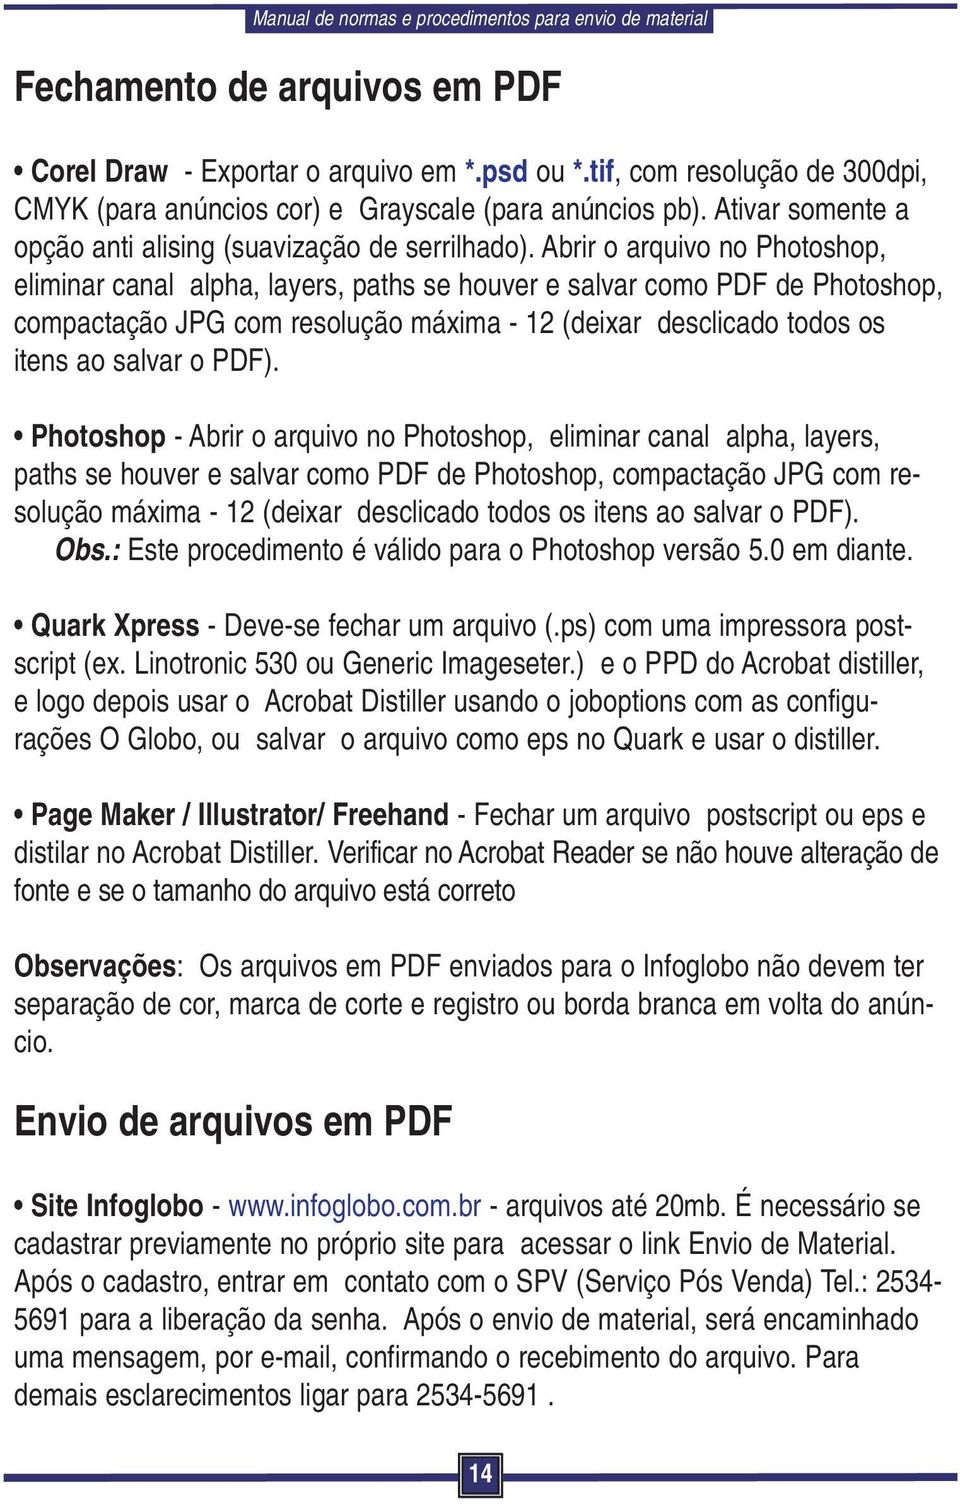 Abrir o arquivo no Photoshop, eliminar canal alpha, layers, paths se houver e salvar como PDF de Photoshop, compactação JPG com resolução máxima - 12 (deixar desclicado todos os itens ao salvar o